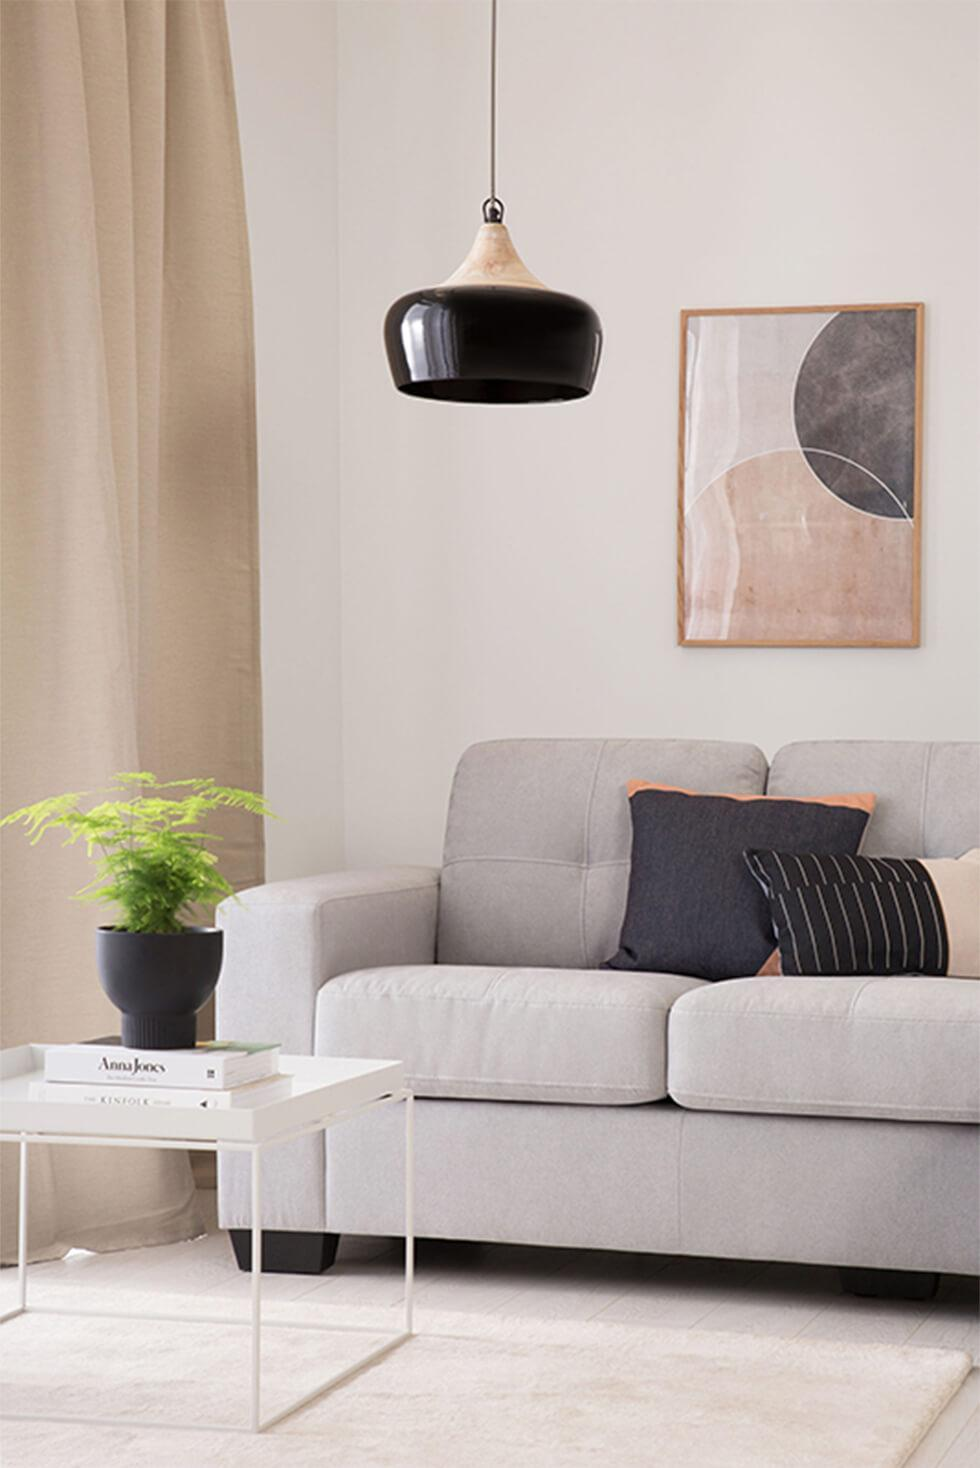 Neutral greige living room with grey sofa, black lamp and white coffee table